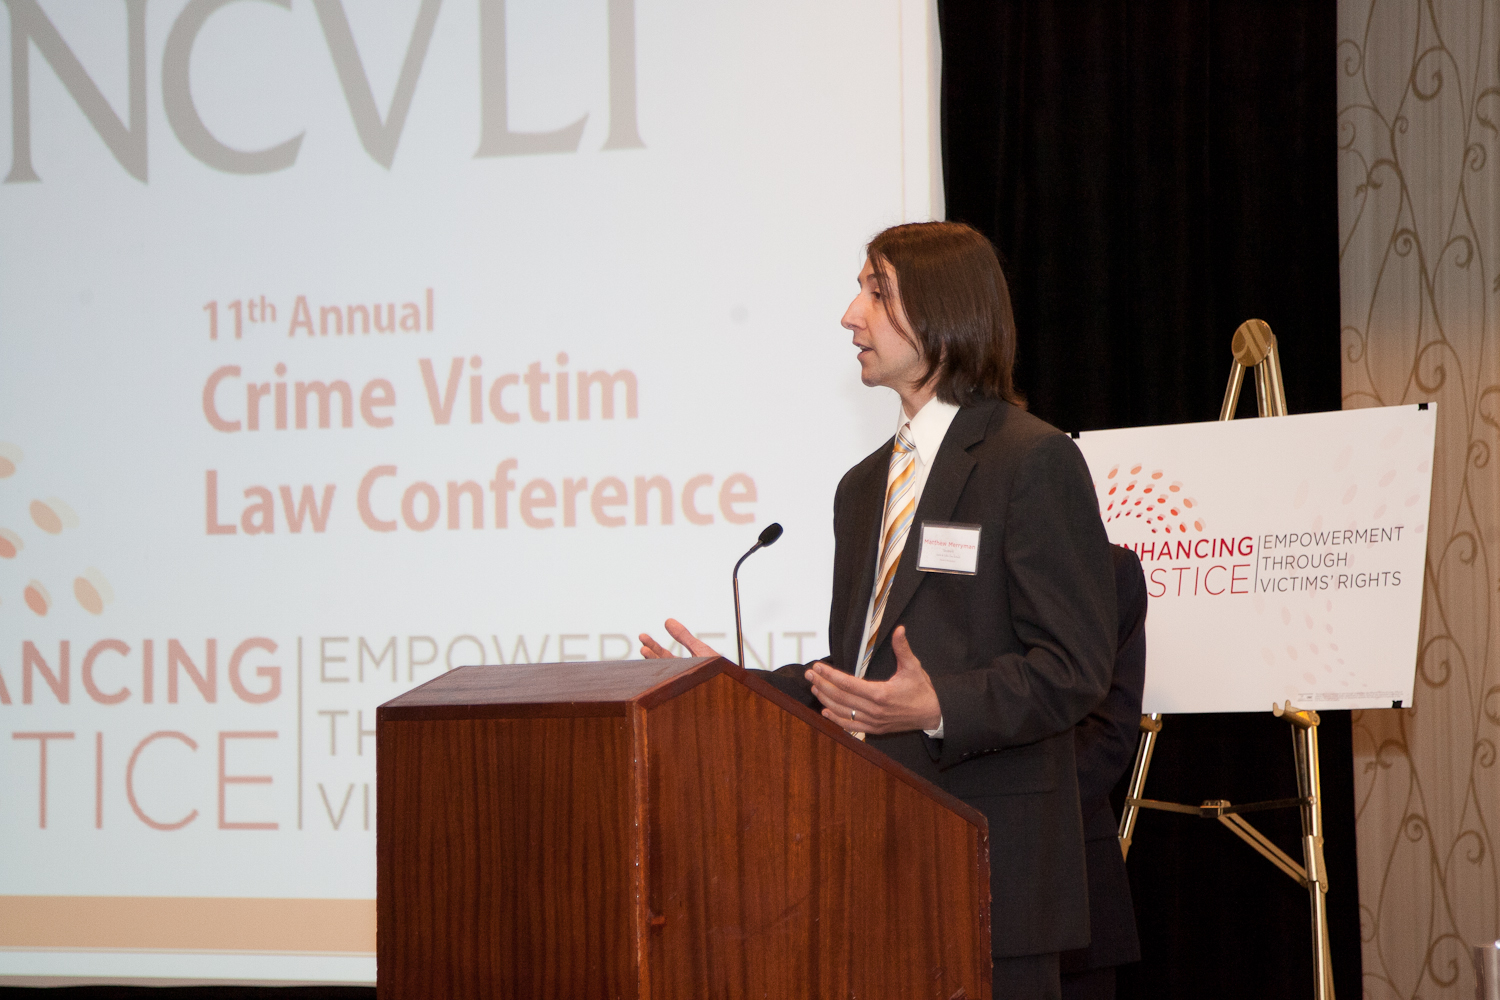 Law Student Matthew Merryman accepts NCVLI's Volunteer of the Year Award at the 11th Annual Crime Victim Law Conference.